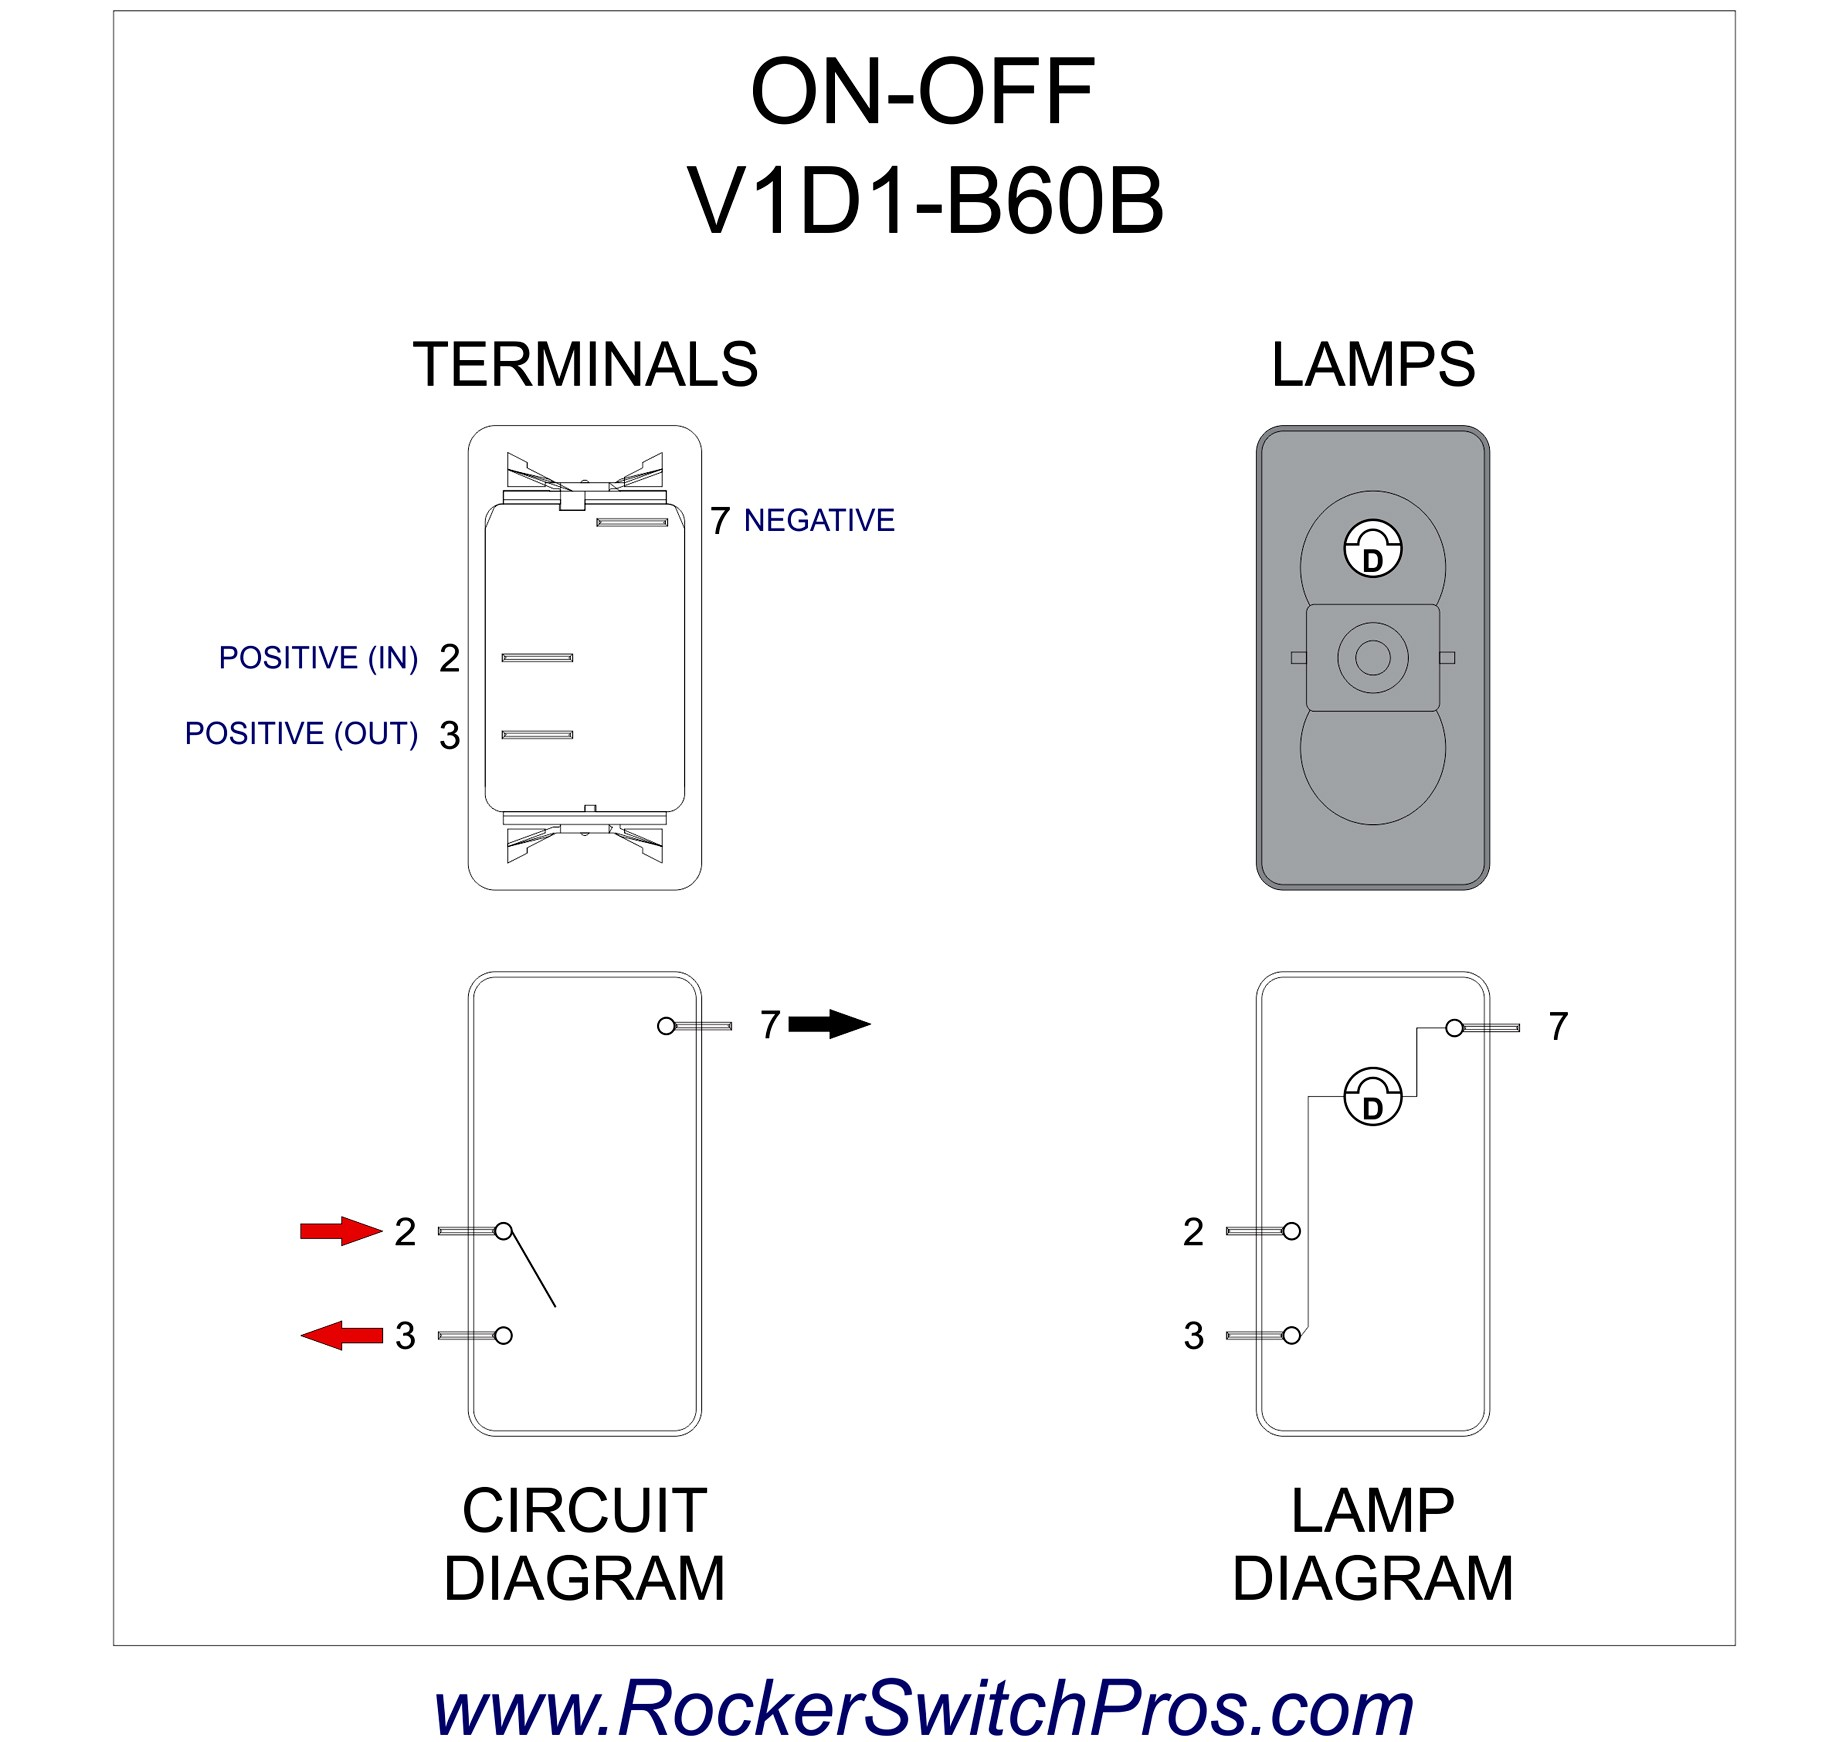 on off on toggle switch wiring diagram rocker switch on off spst 1 starter switch wiring diagram on off on toggle switch wiring diagram rocker switch on off spst 1 dep light v1d1 brilliant wiring diagram